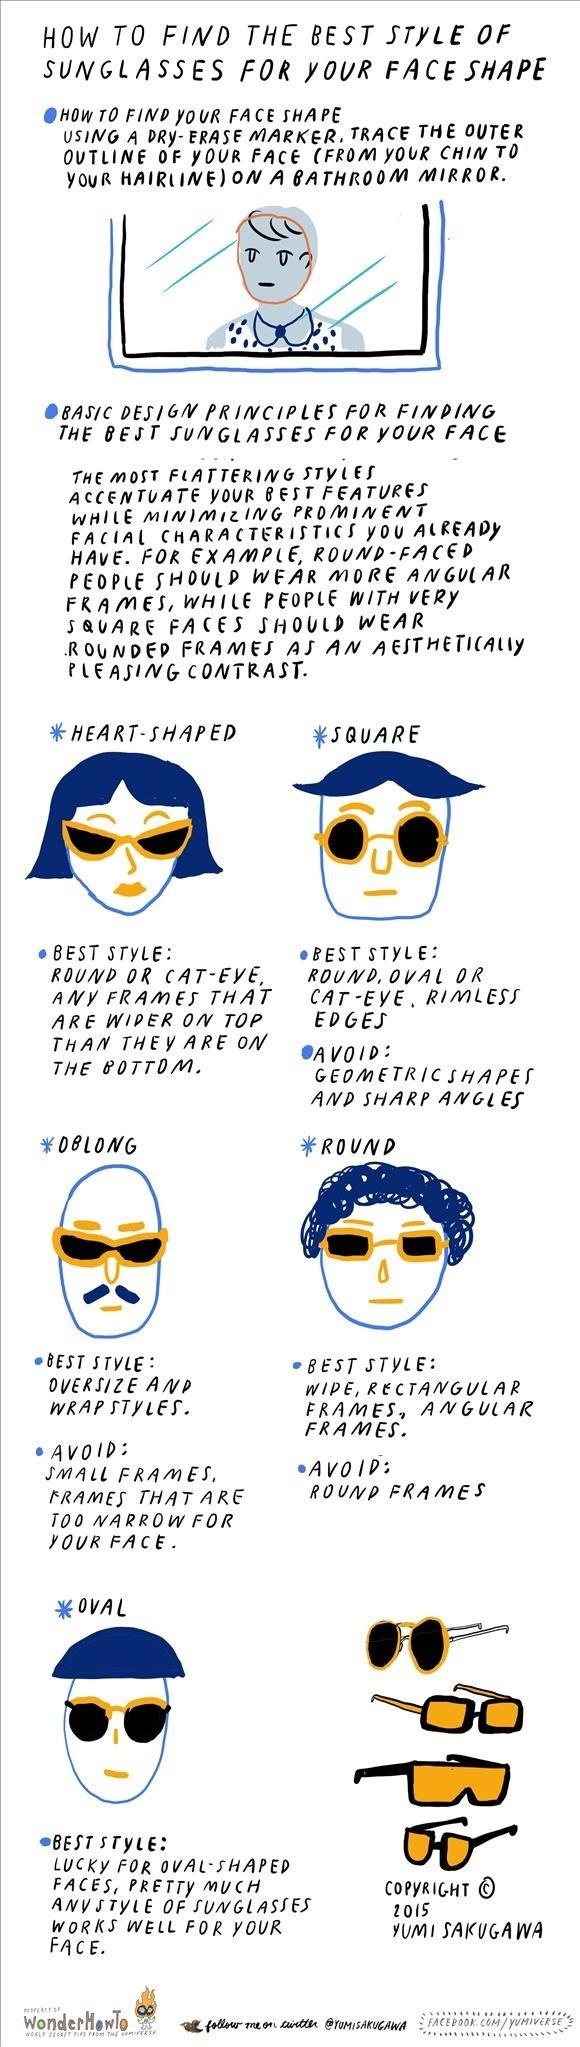 How to Find the Best Sunglasses for Your Face Shape